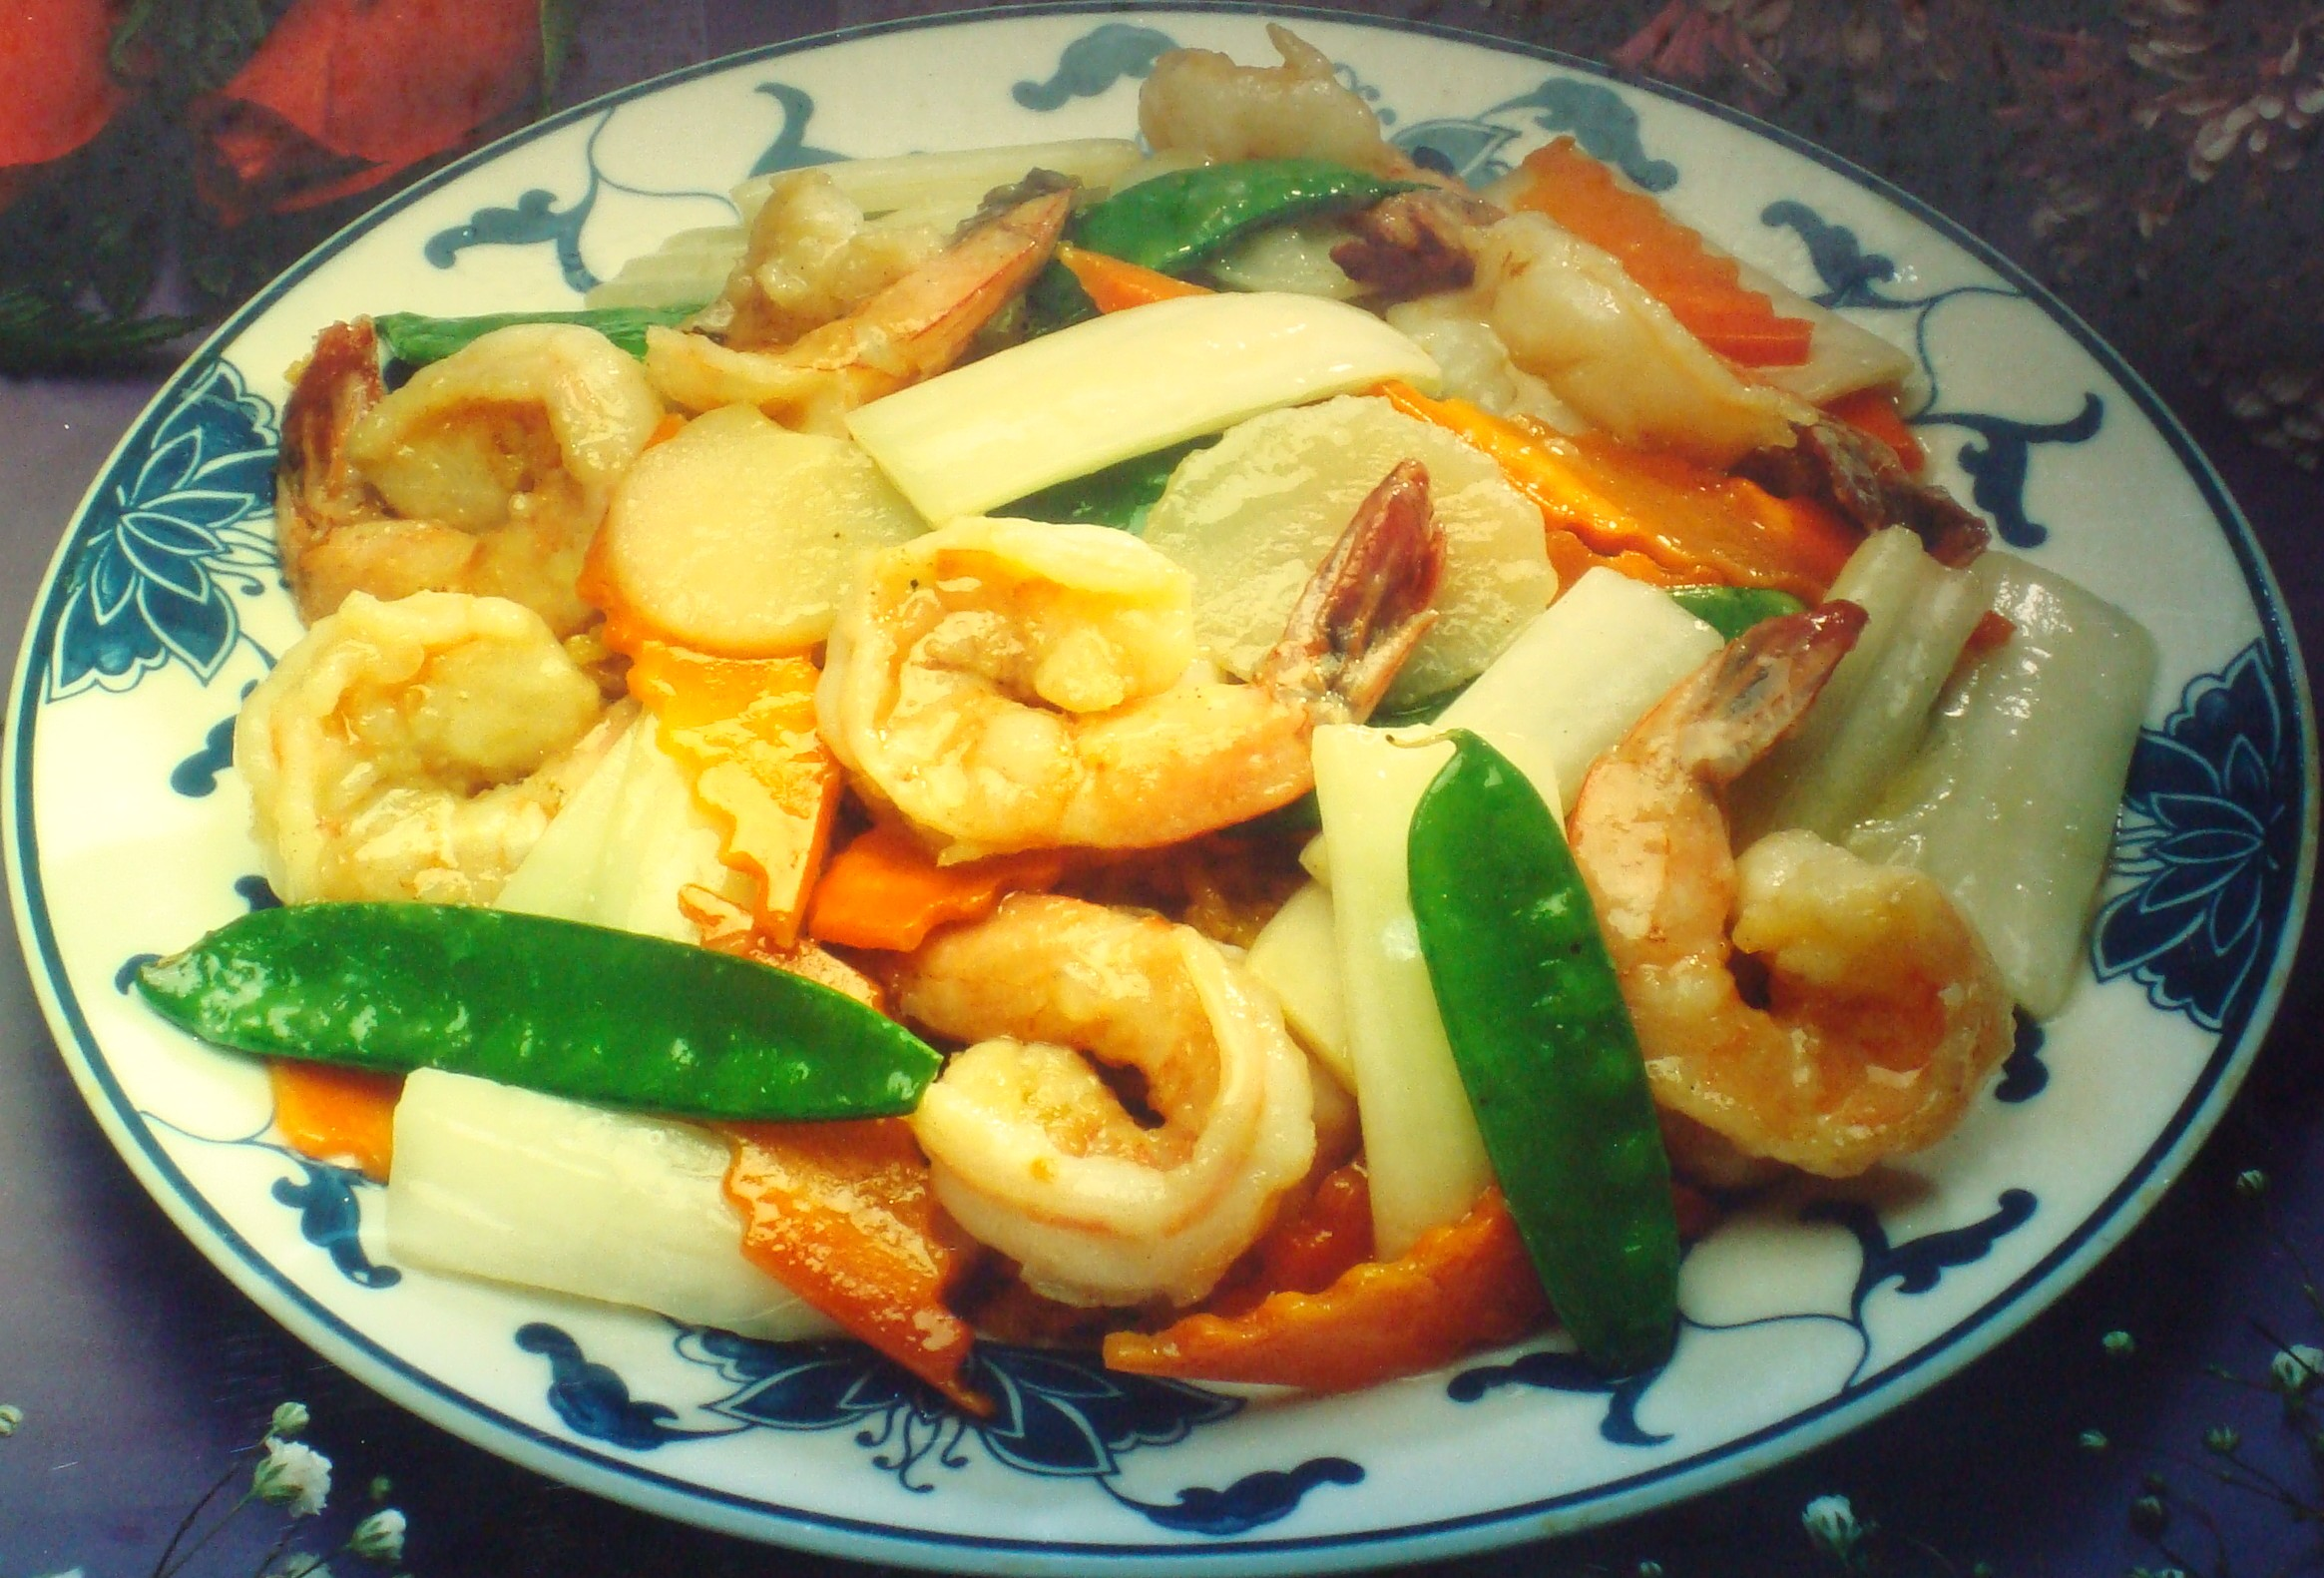 Barbecued Shrimp and Mixed Vegetables with Lemon Zest ... |Shrimp With Mixed Vegetables